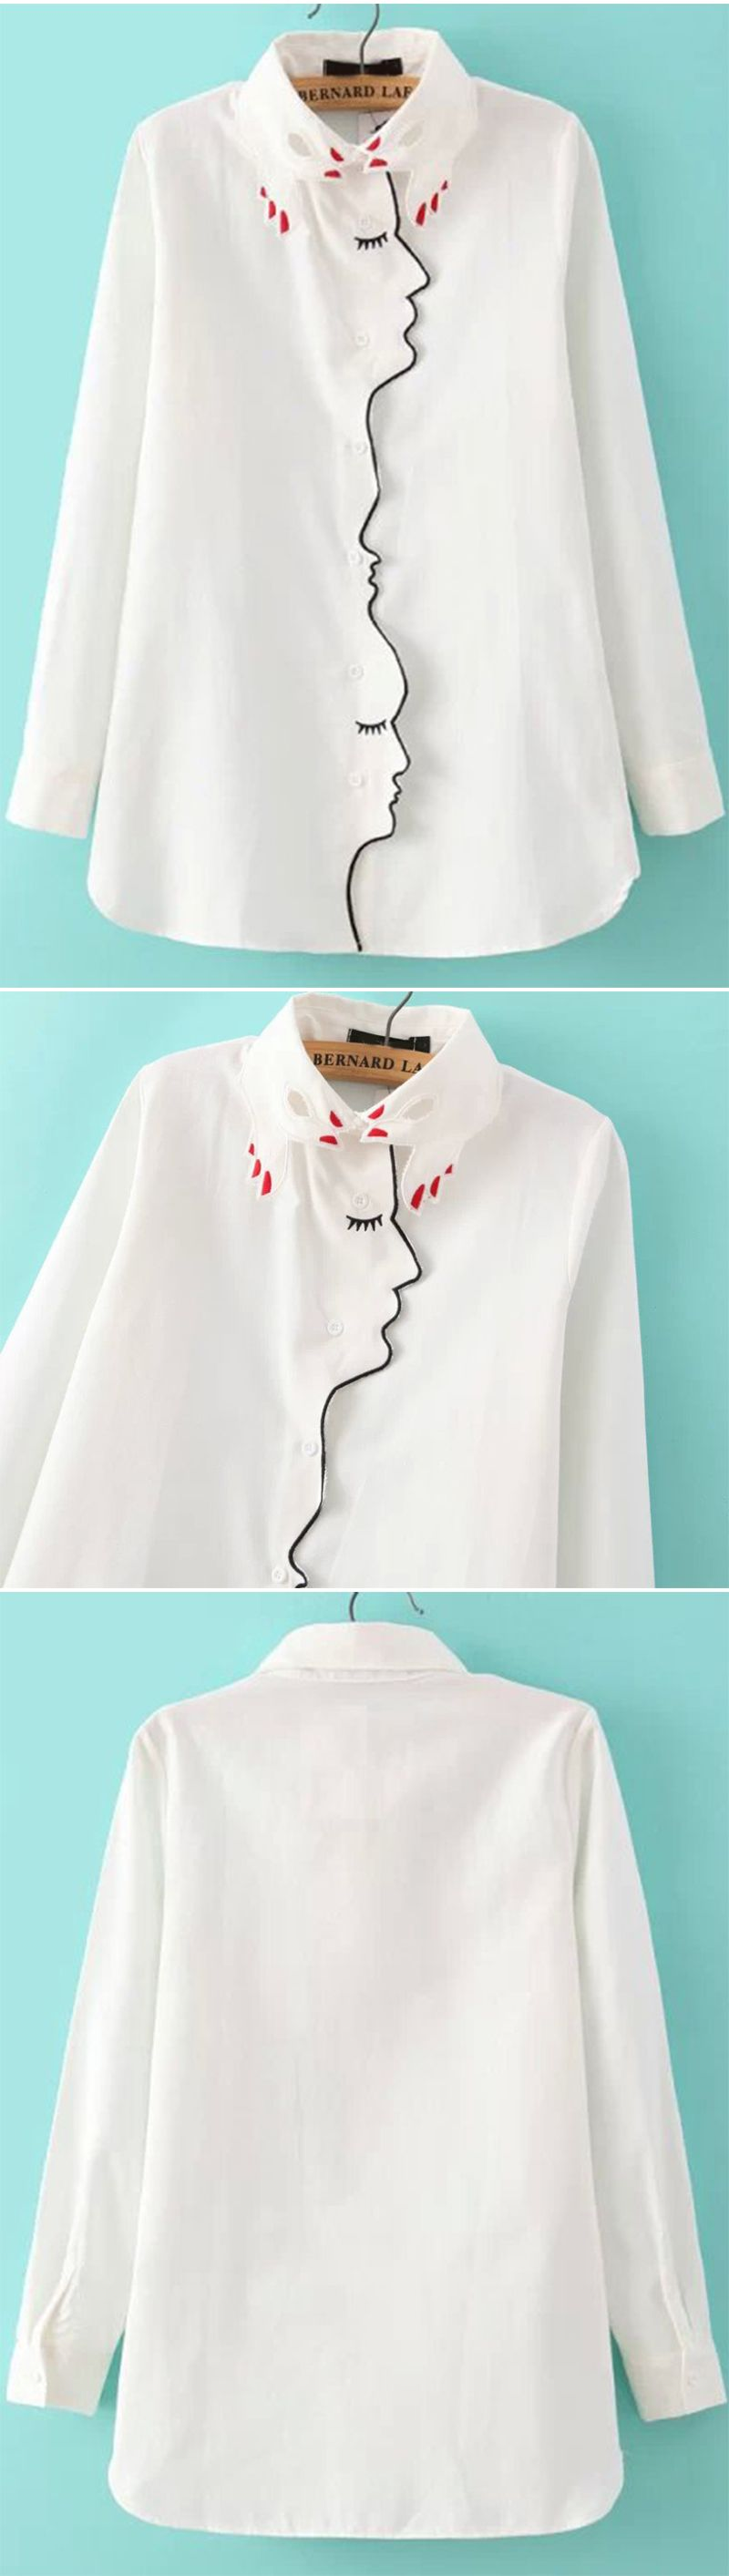 White Hand Collar Embroidered Blouse. Sale for US$19.25. Nice equipment shirt blouse with delicate embroidered detail. Stylish loose long shirt dress collar streetwear.